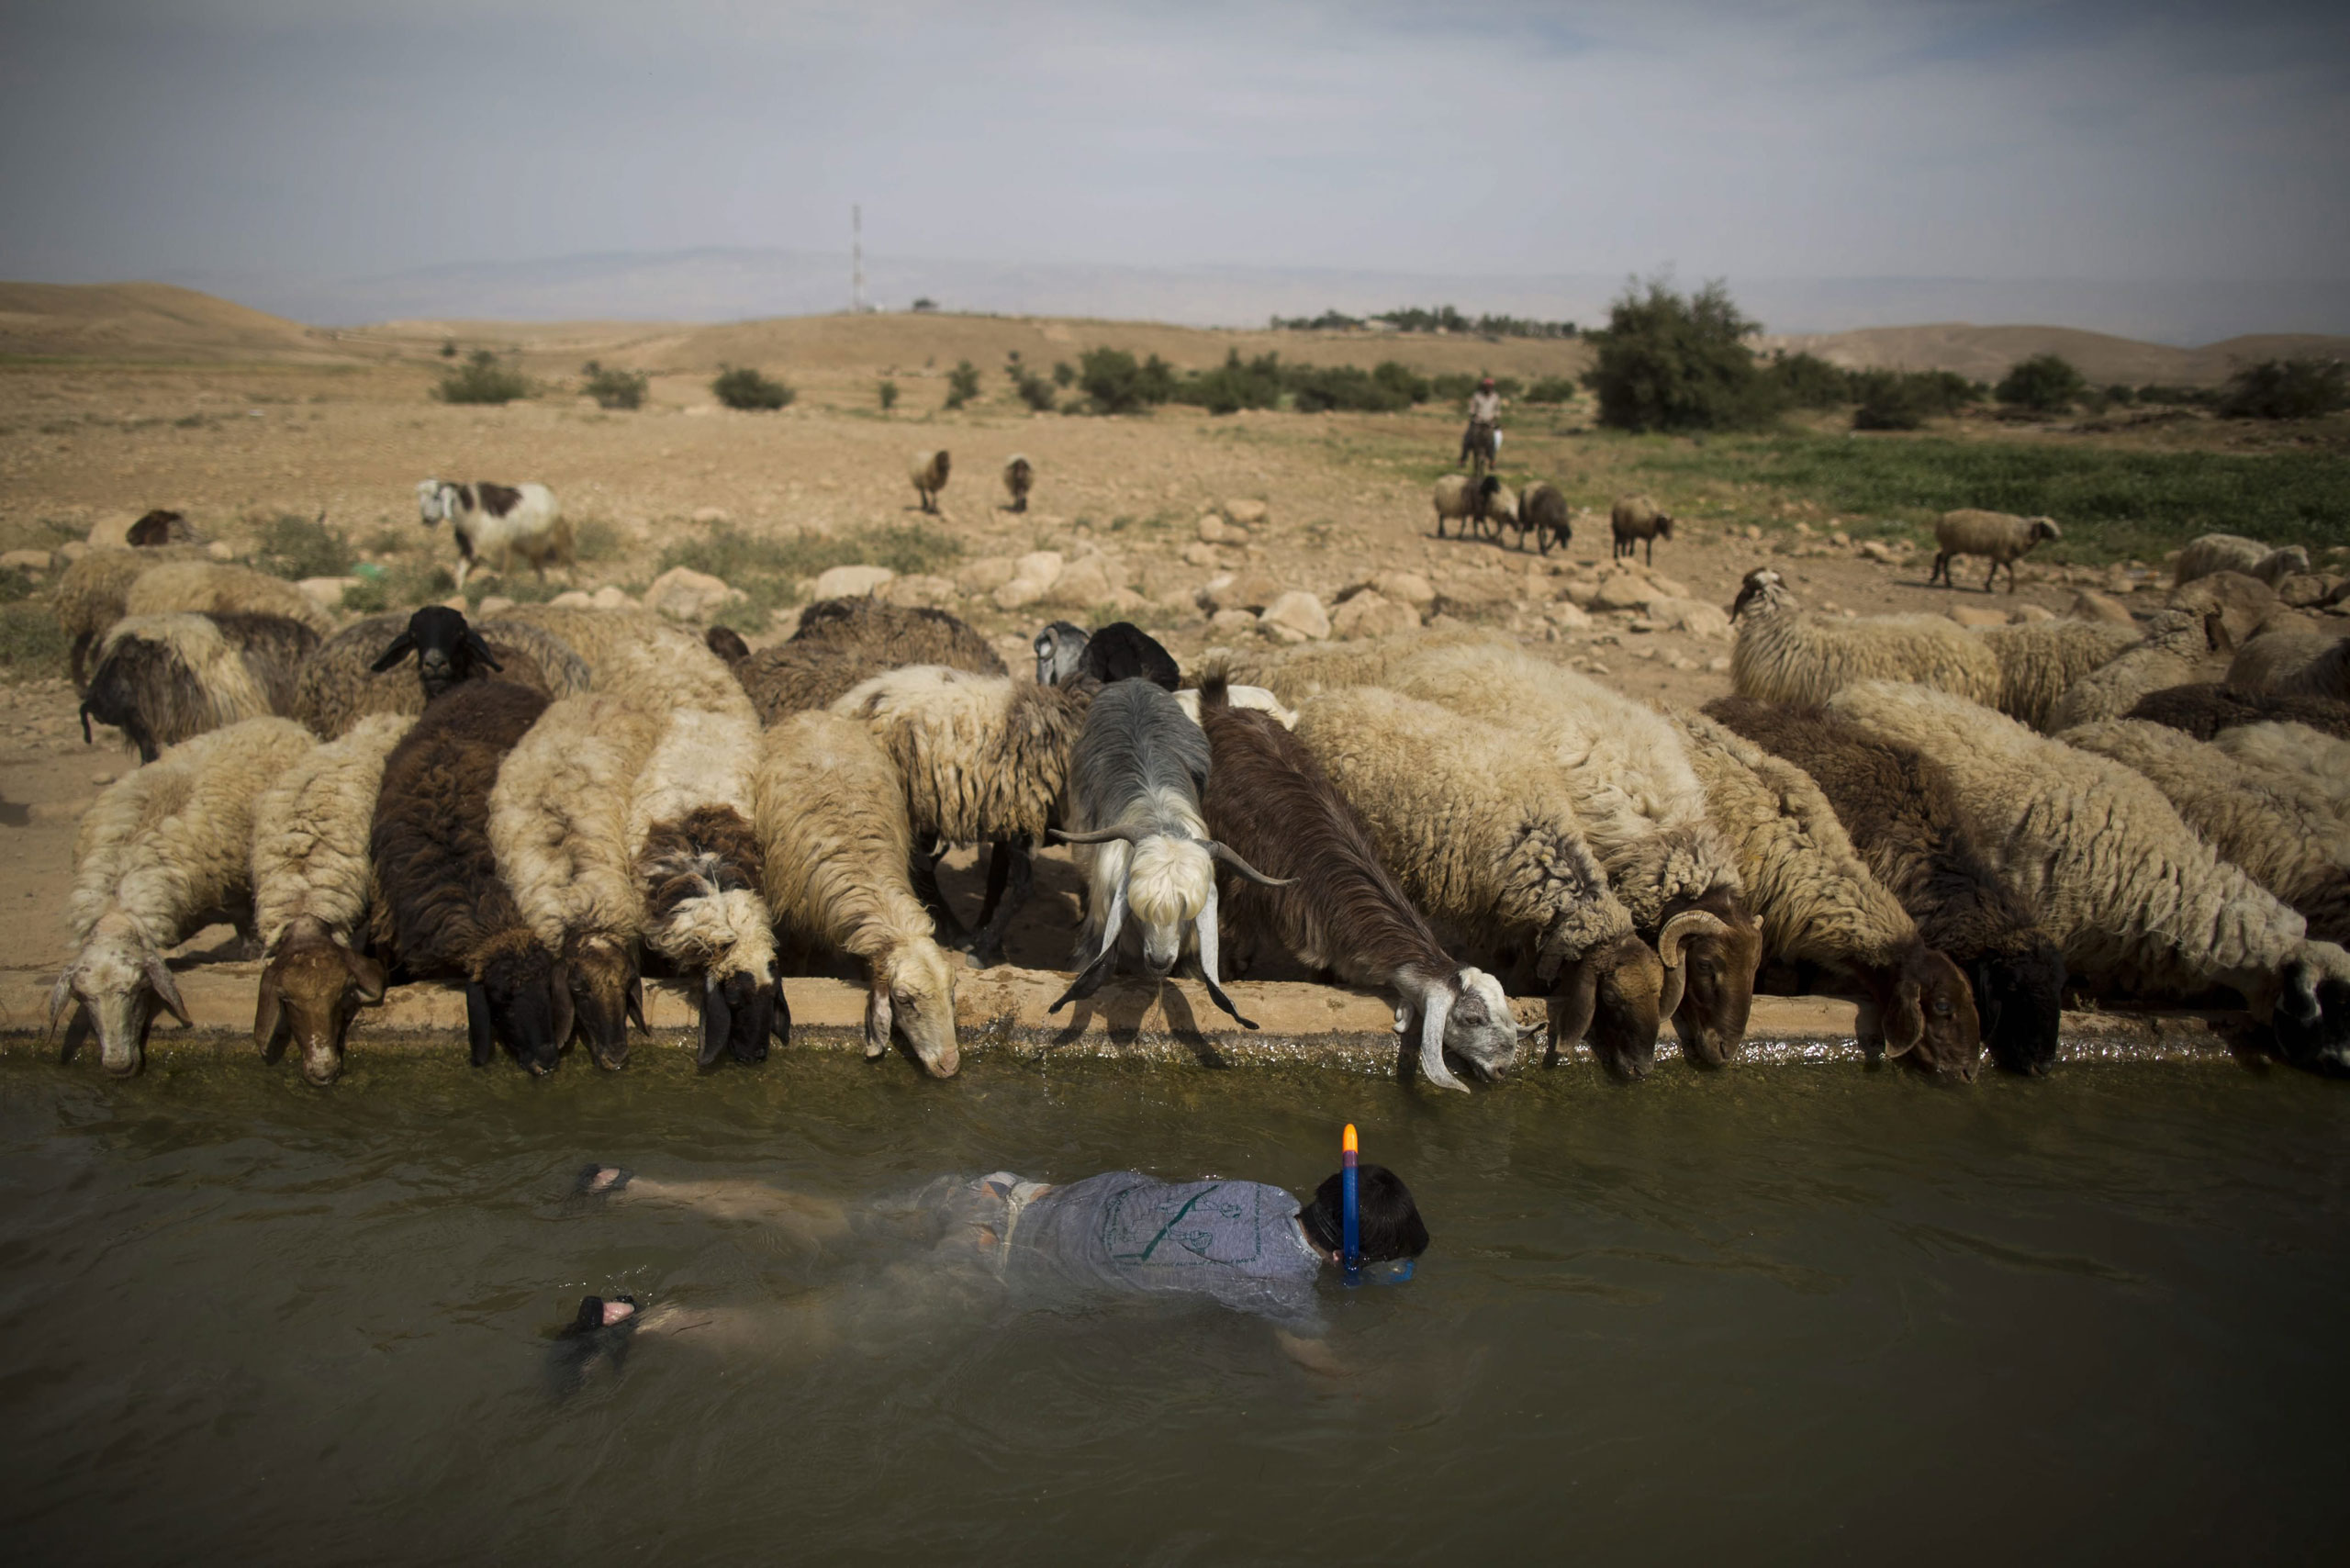 A young Israeli settler snorkels as sheep belonging to a Palestinian shepherd drink water from a spring located in the Jordan Valley near the Palestinian village of Uja, near the West Bank town of Jericho. April 8, 2015.